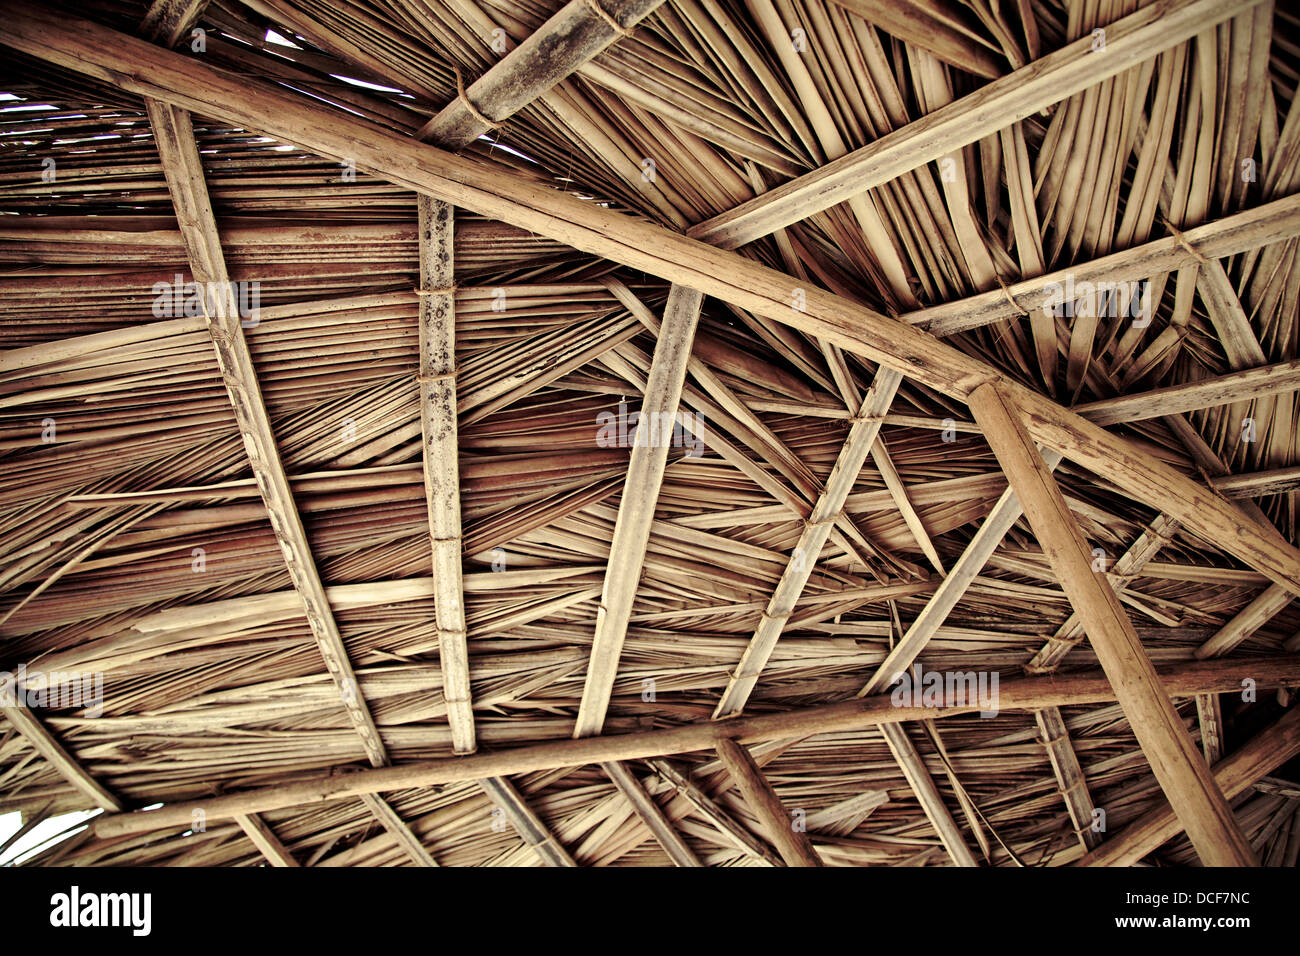 Stock Photo   Dried Palm Tree Leaves Palapa Roof And Beams View From Under